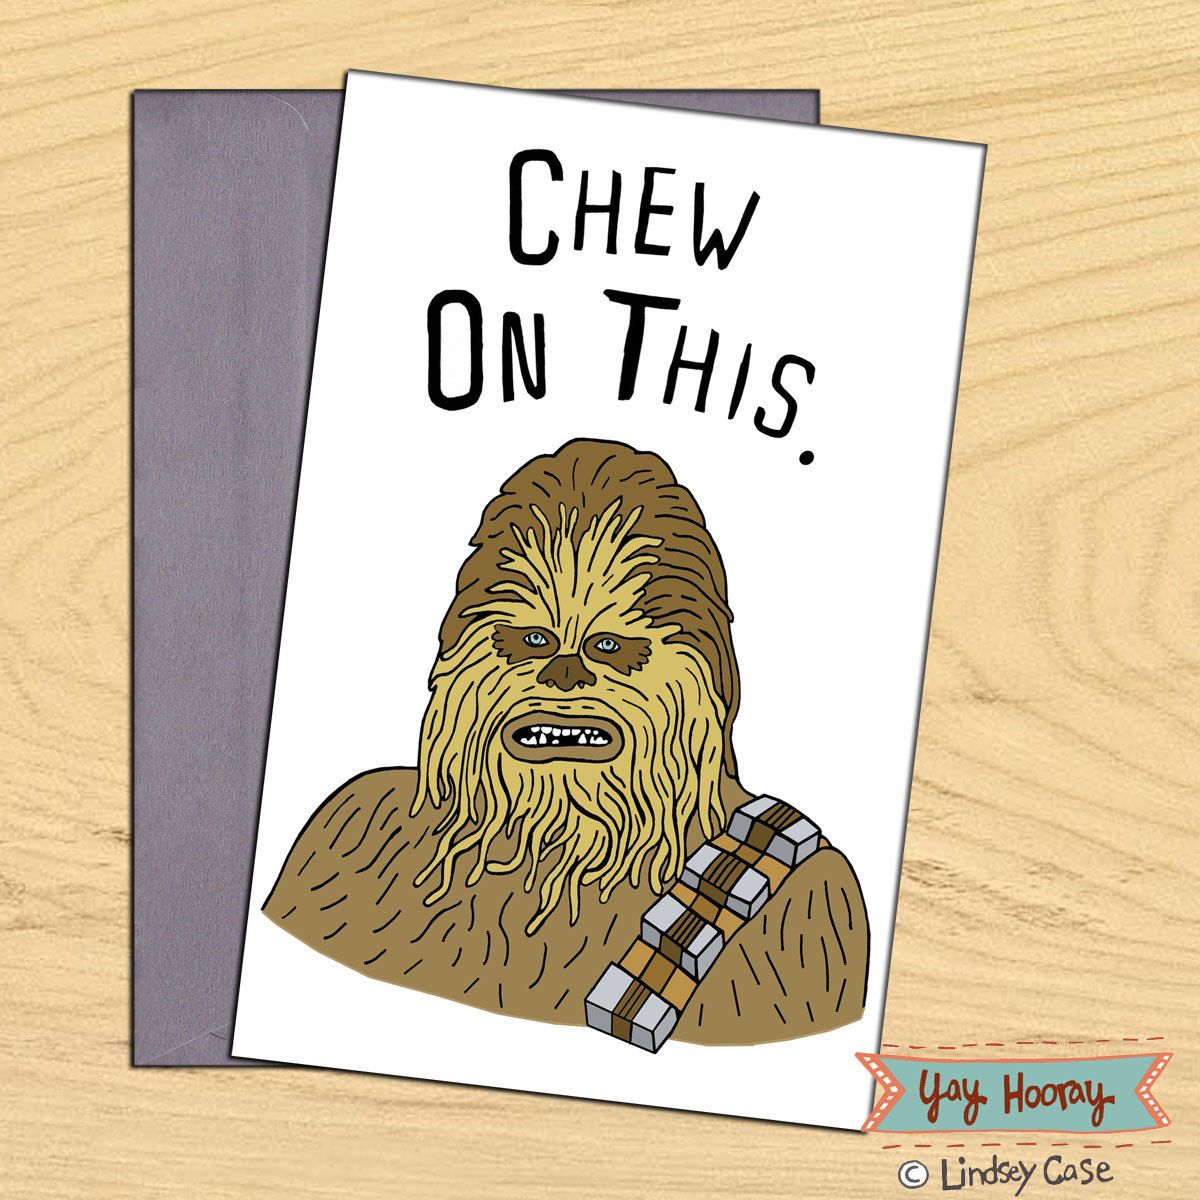 Chew on this chewbacca star wars blank funny birthday pun card chew on this chewbacca star wars blank funny birthday pun card bookmarktalkfo Choice Image